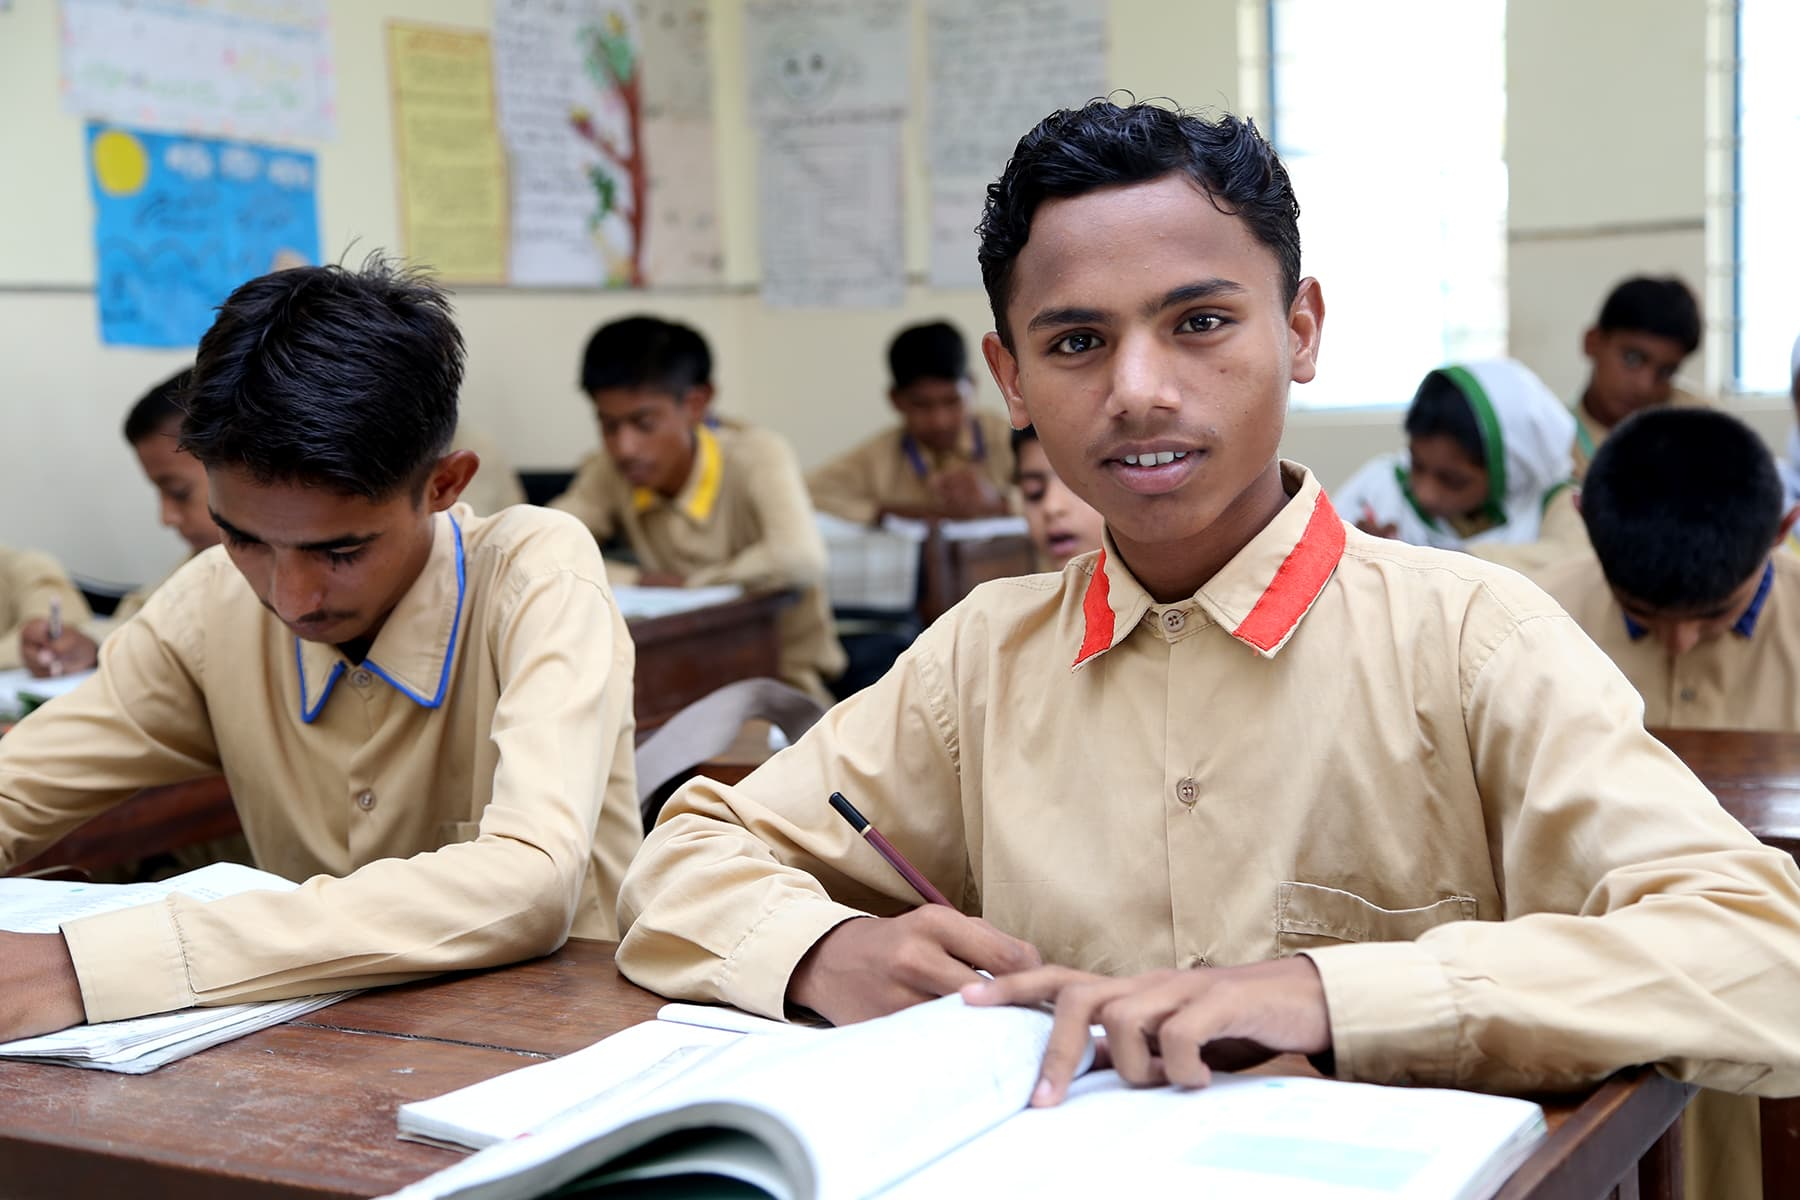 Khalil Ahmed pictured in his classroom. - Photo by Mustafa Ilyas